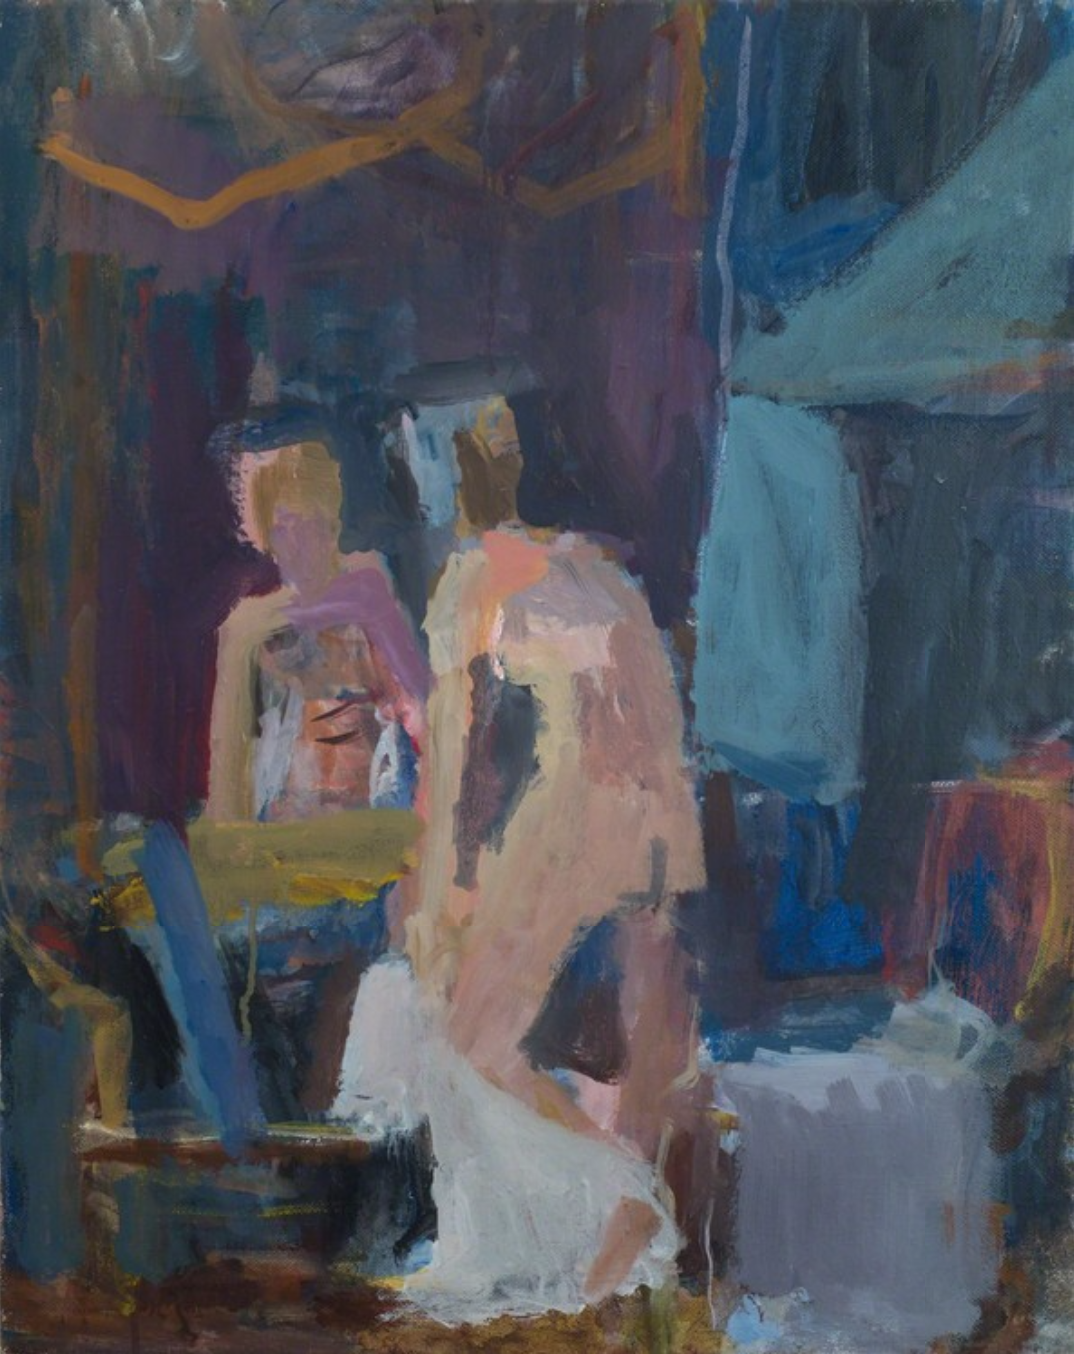 Janice Nowinski, Woman Dressing in Front of Mirror, 2016, oil on linen, 20 × 16 inches (courtesy of Kent Fine Art)